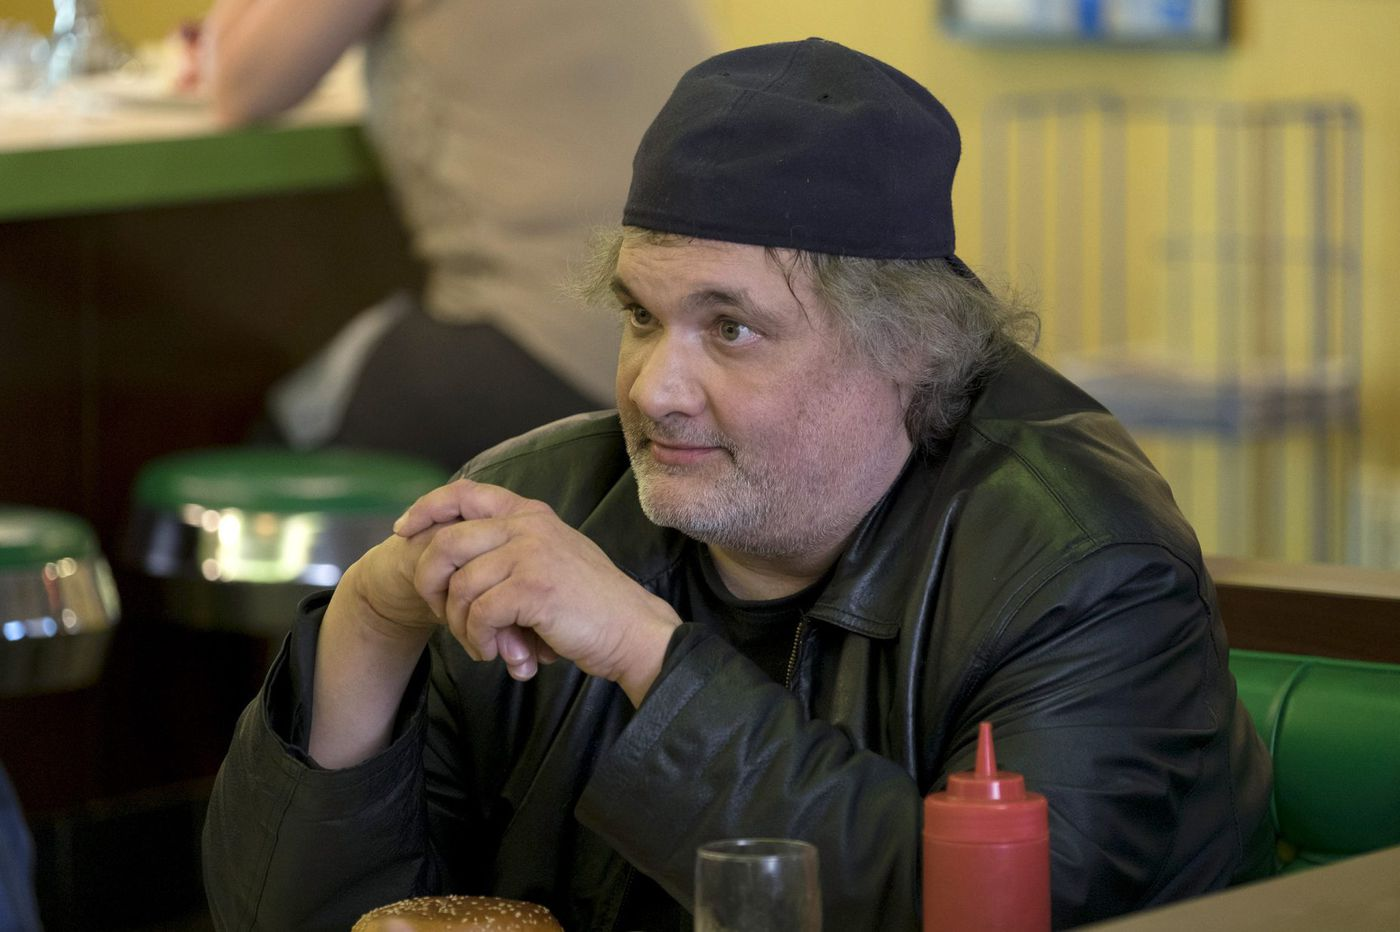 Comedian Artie Lange says he's going to rehab